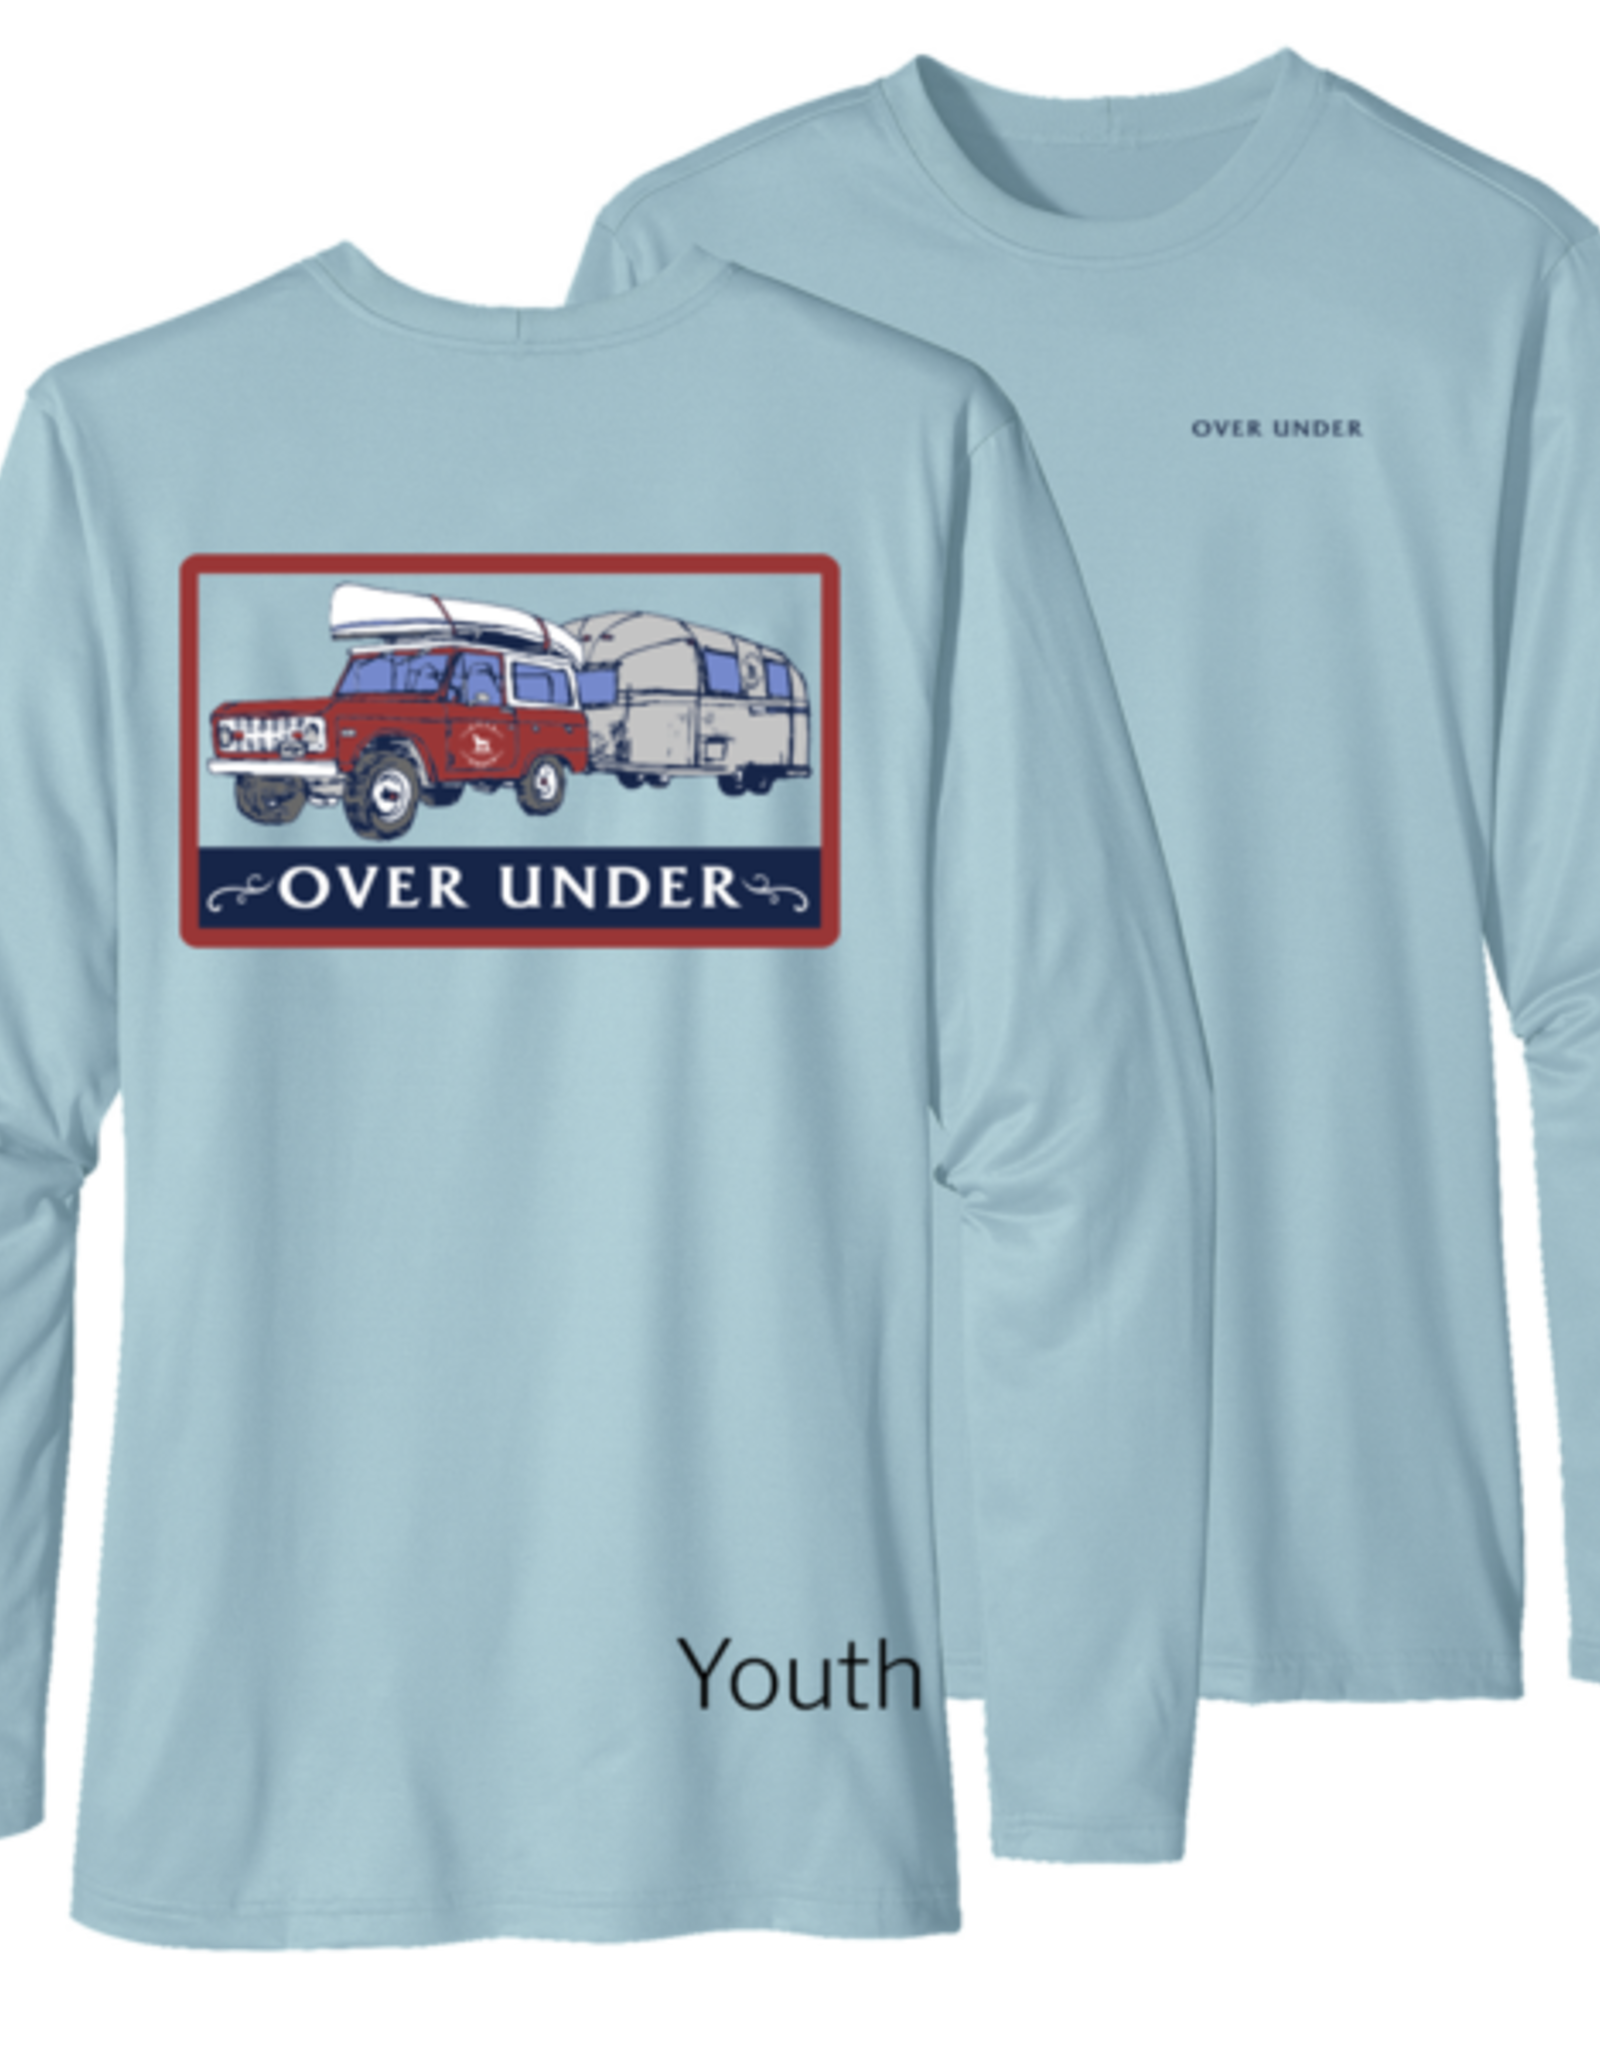 Over Under L/S Youth Tidal Tech